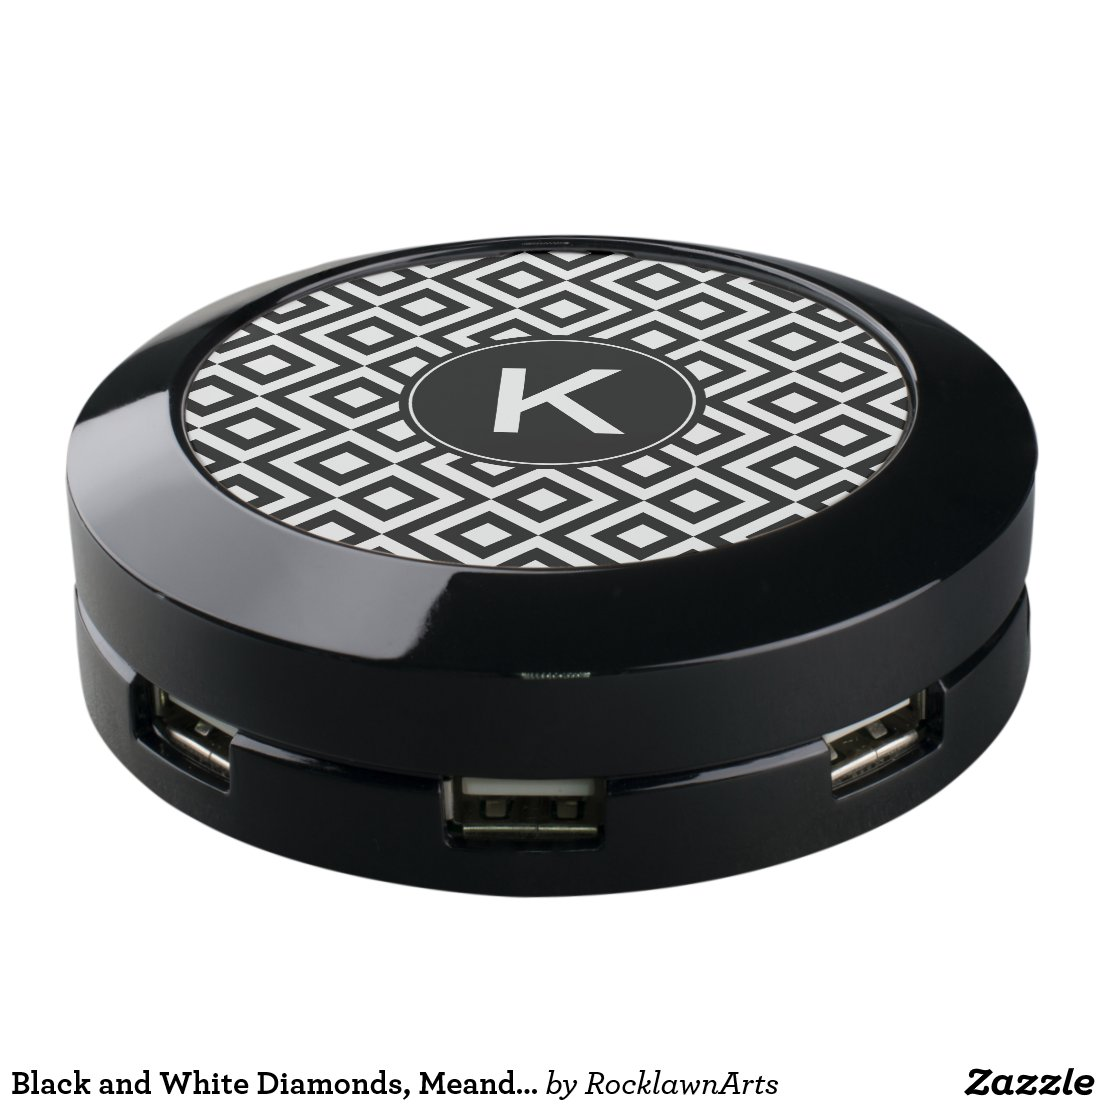 Black and White Diamonds, Meander, Custom Monogram USB Charging Station